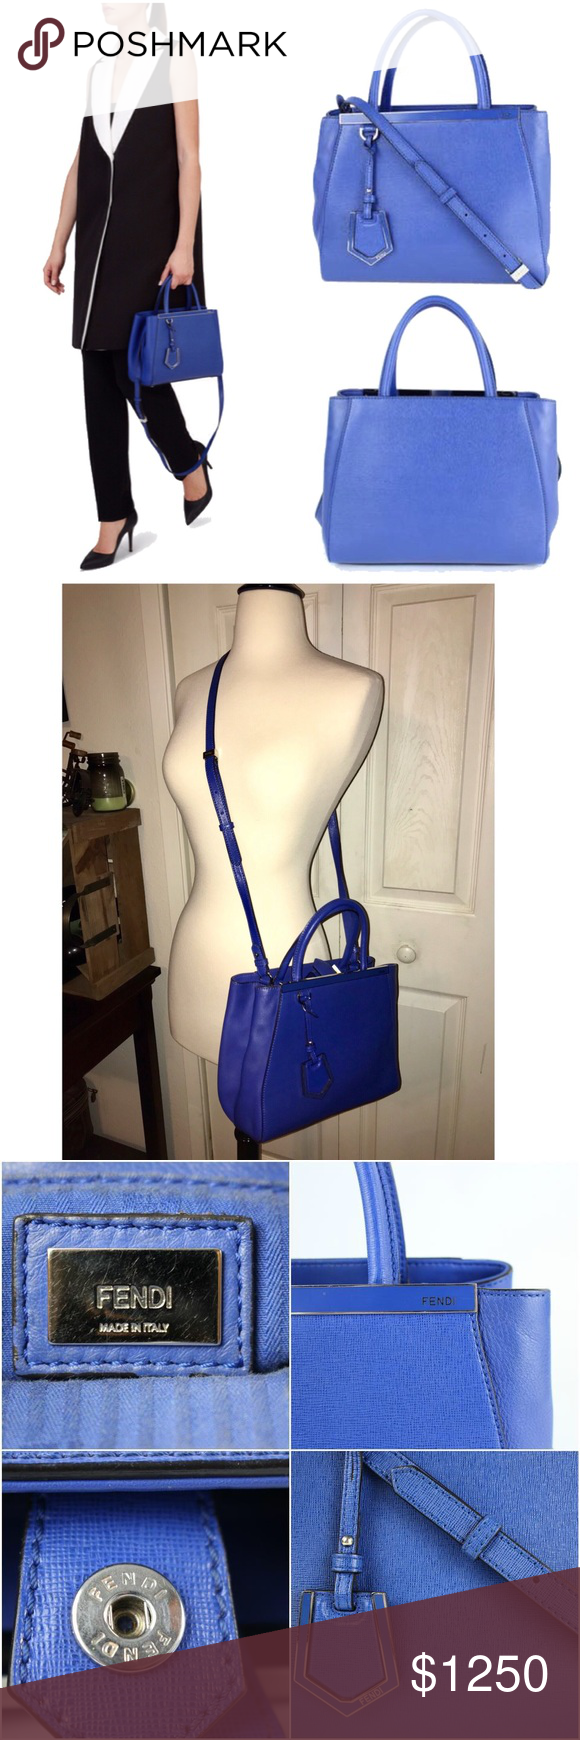 HP✨Authentic Fendi Vitello Elite Petite 2jours Bag Timeless tote, crafted  of two different calfskin leathers in lmtd ed. neon blue. 62be475484